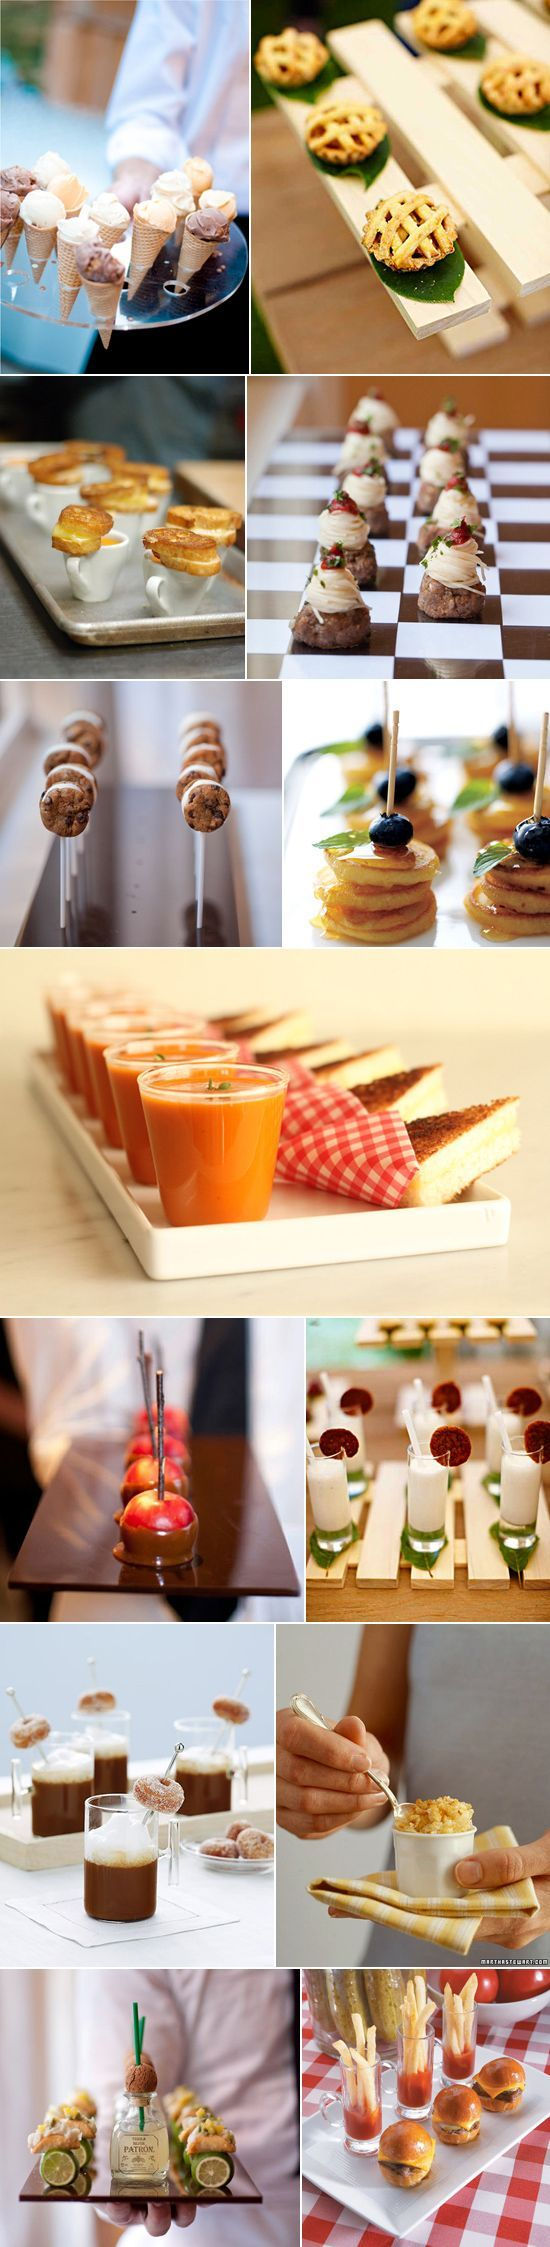 Wedding Midnight Snacks#Repin By:Pinterest++ for iPad#